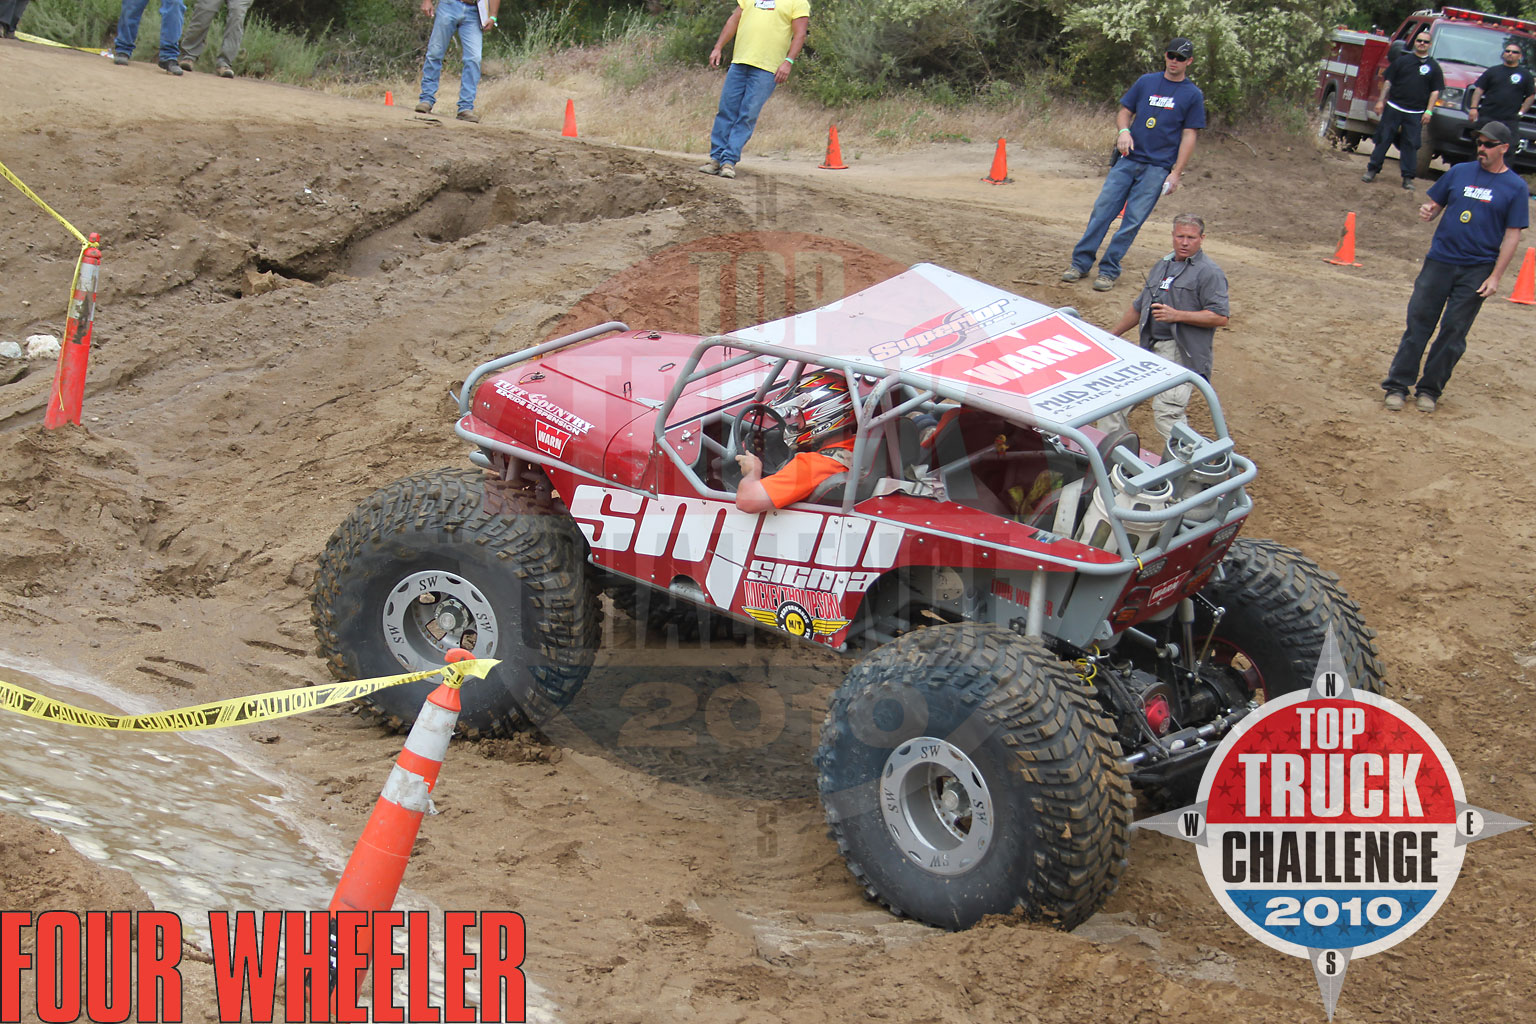 2010 Top Truck Challenge Obstacle Course Mike Karwath 2009 Tube Chassis Yj Buggy